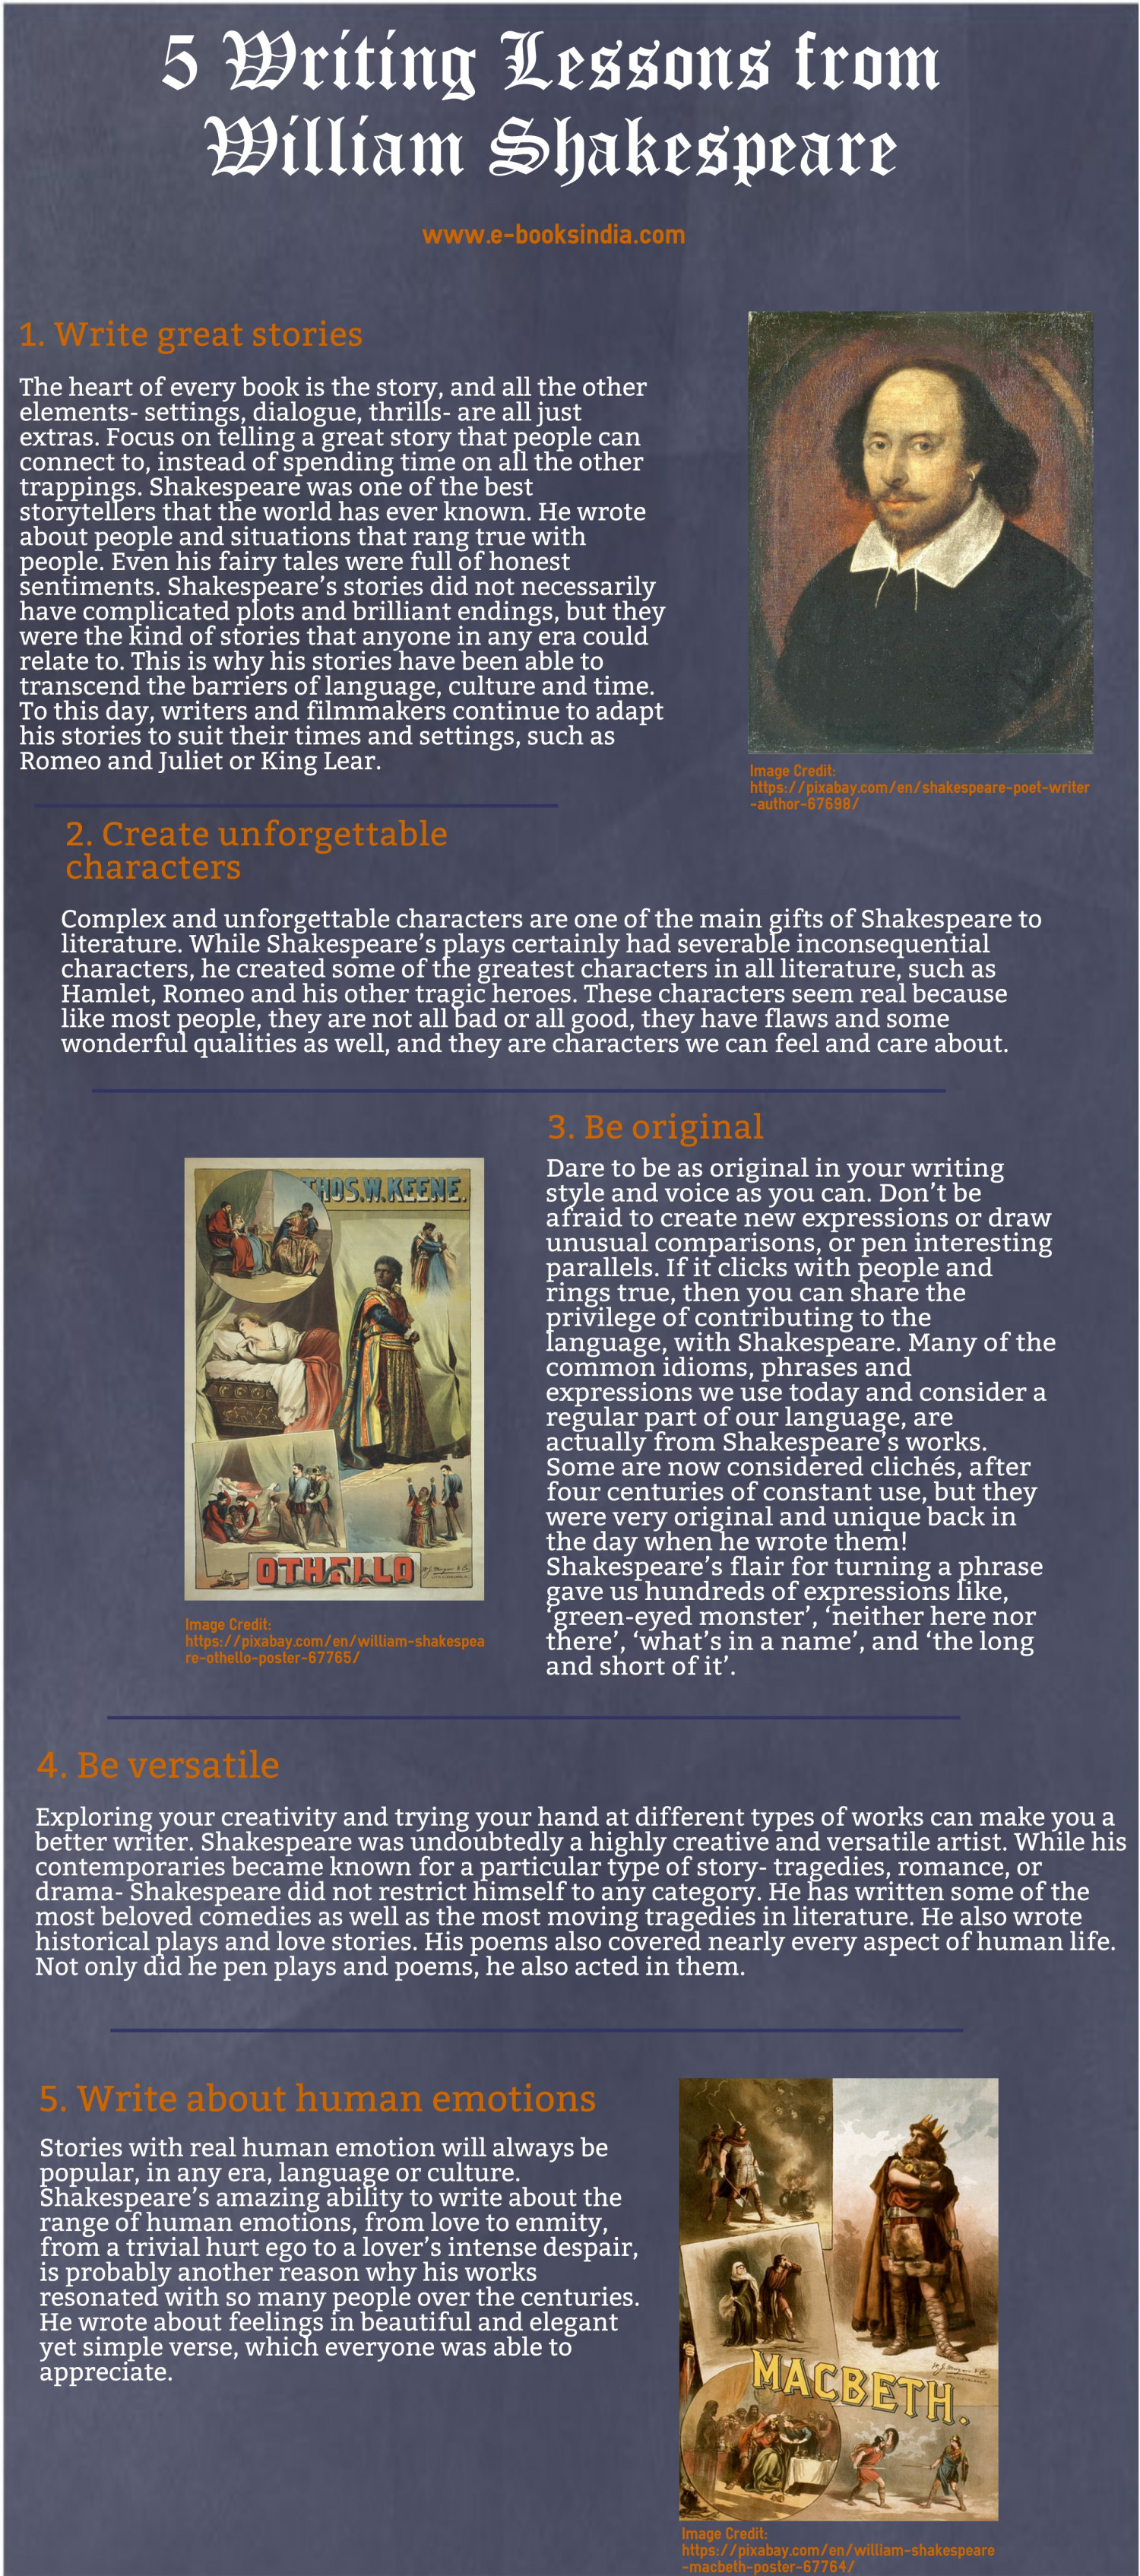 5 Writing Lessons from William Shakespeare Infographic